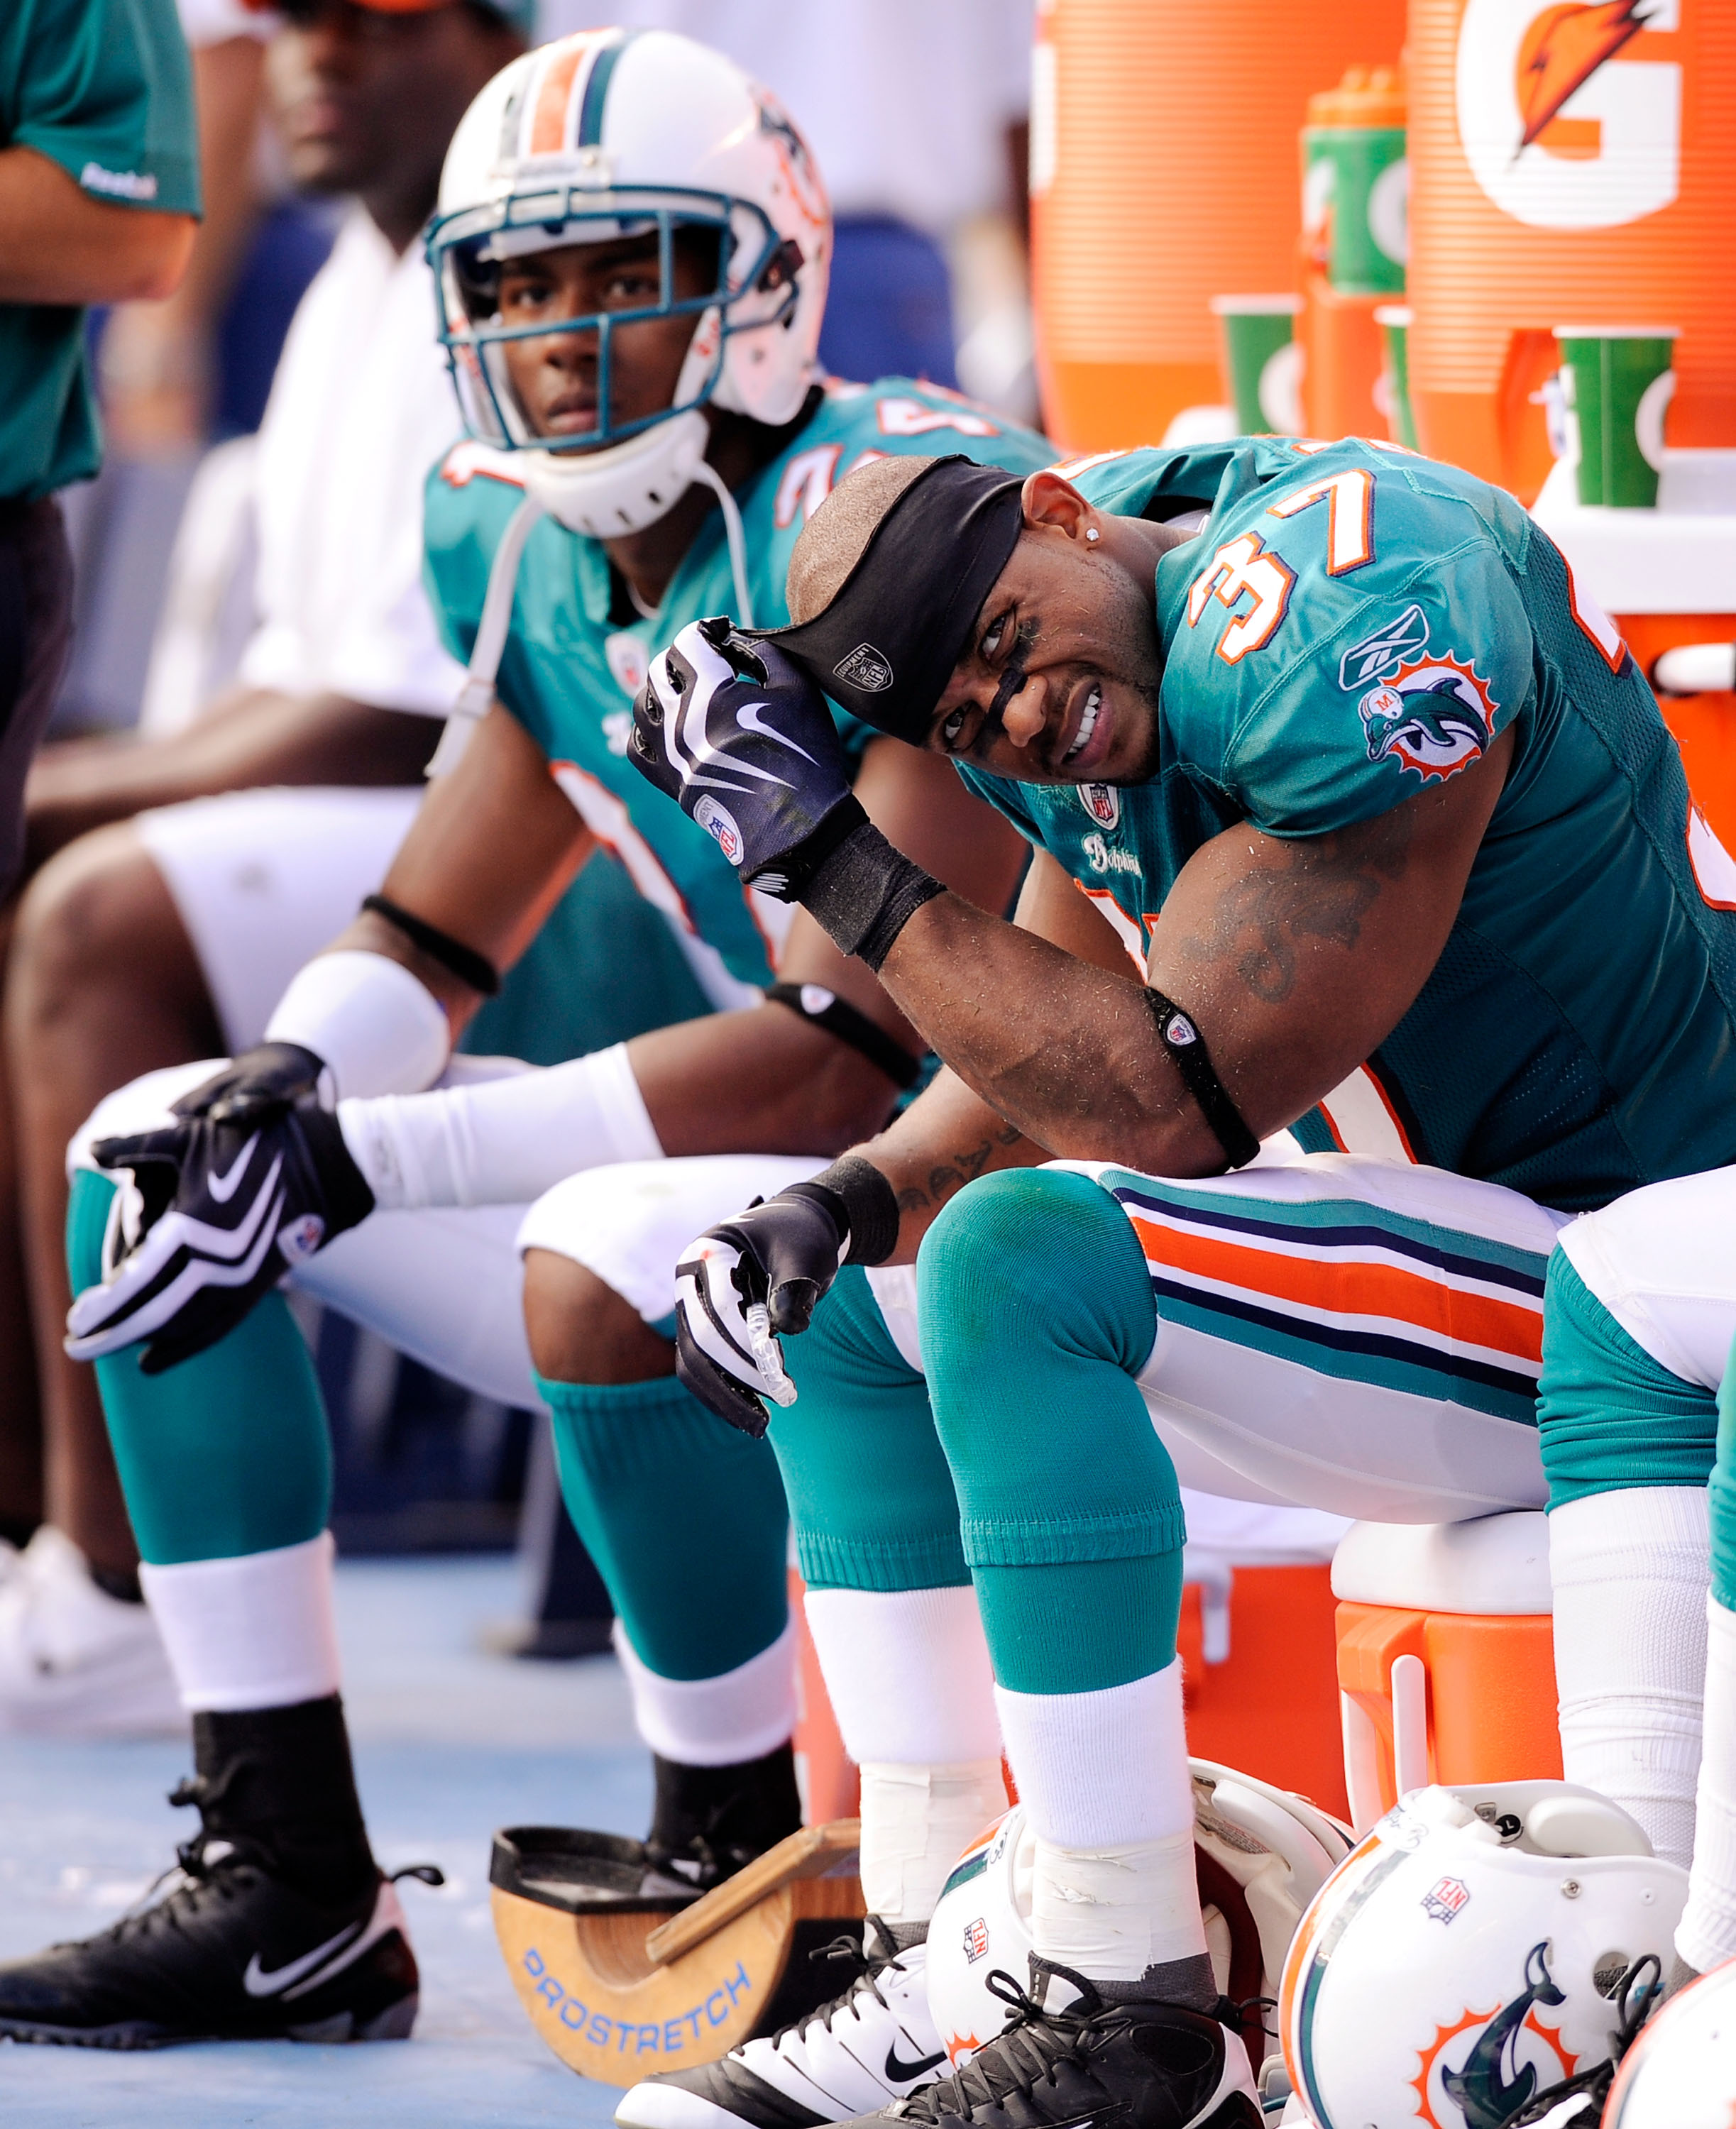 SAN DIEGO - SEPTEMBER 27: Safety Yeremiah Bell #37 of the Miami Dolphins  reacts on the sideline during their loss to San Diego Chargers, 23-13, during the NFL football game at Qualcomm Stadium on September 27, 2009 in San Diego, California.  (Photo by Ke